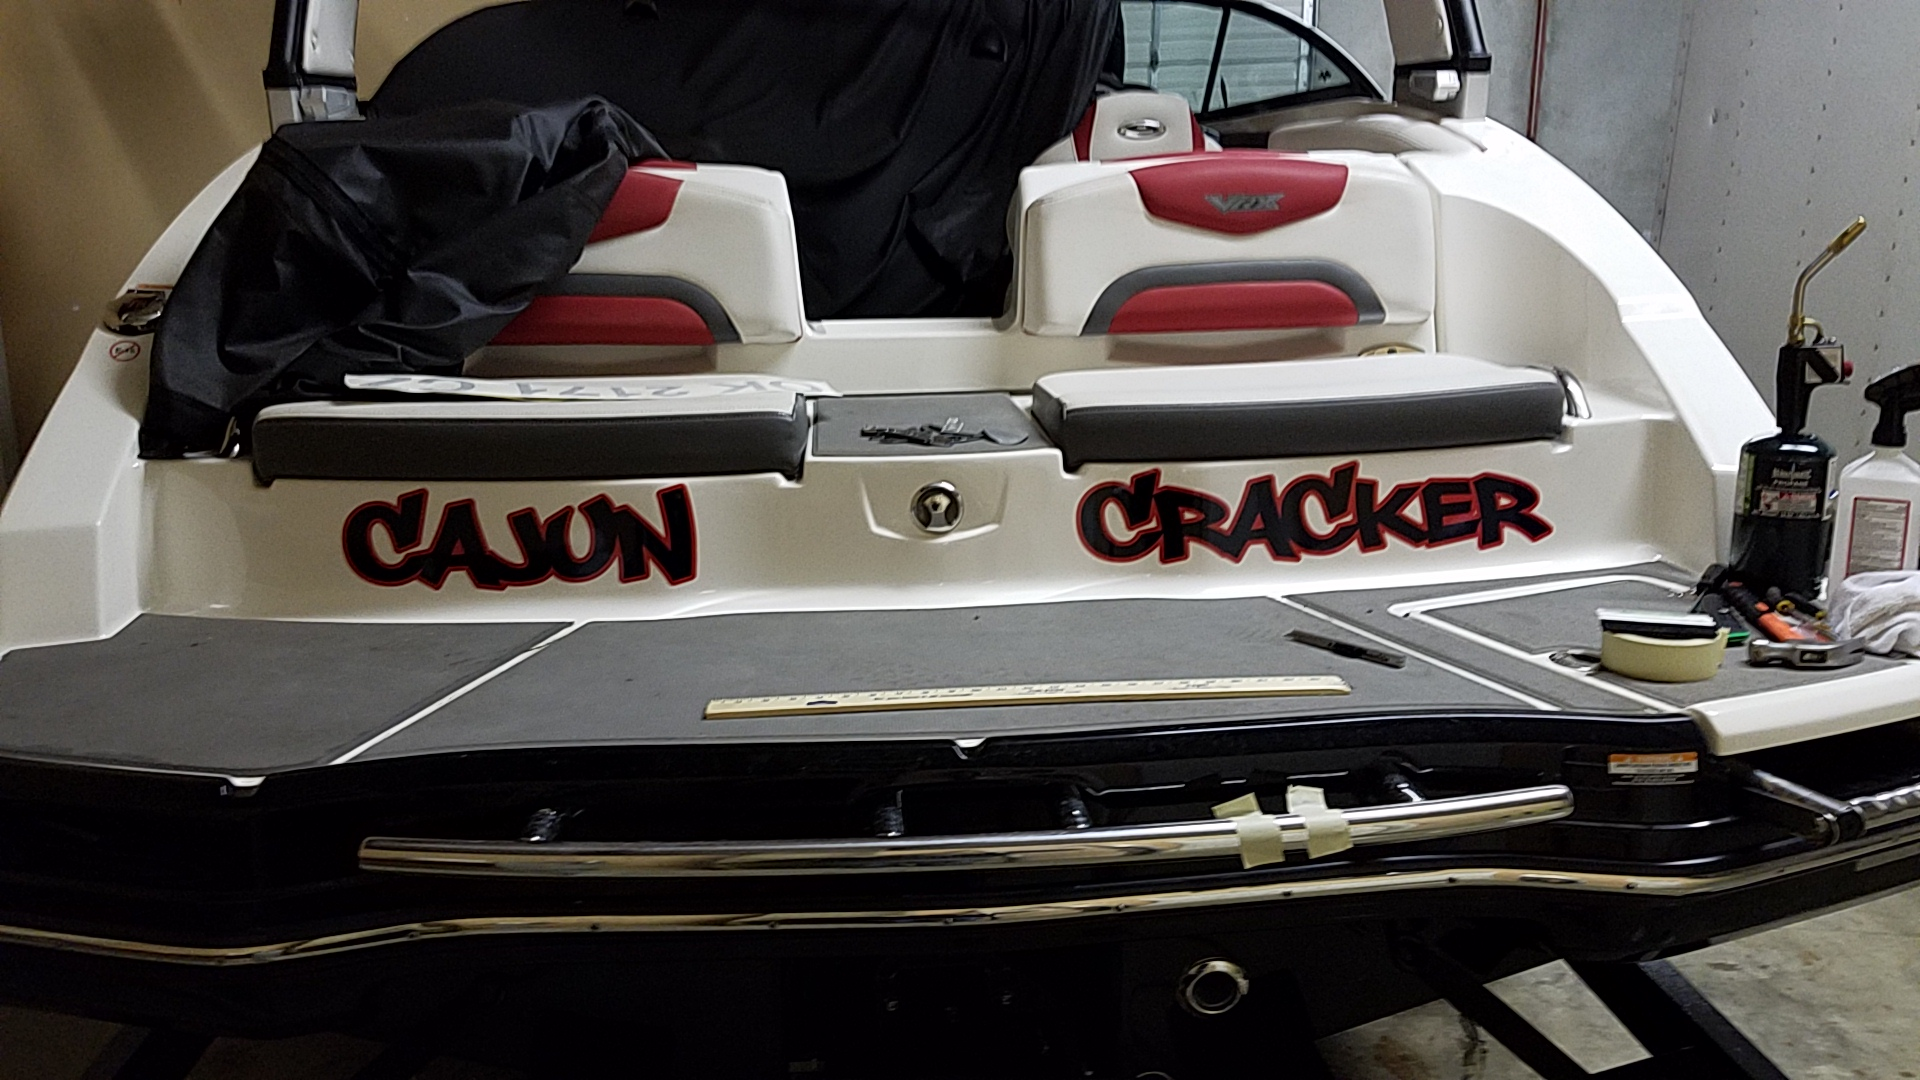 Cajun Cracker - Custom Boat Decal